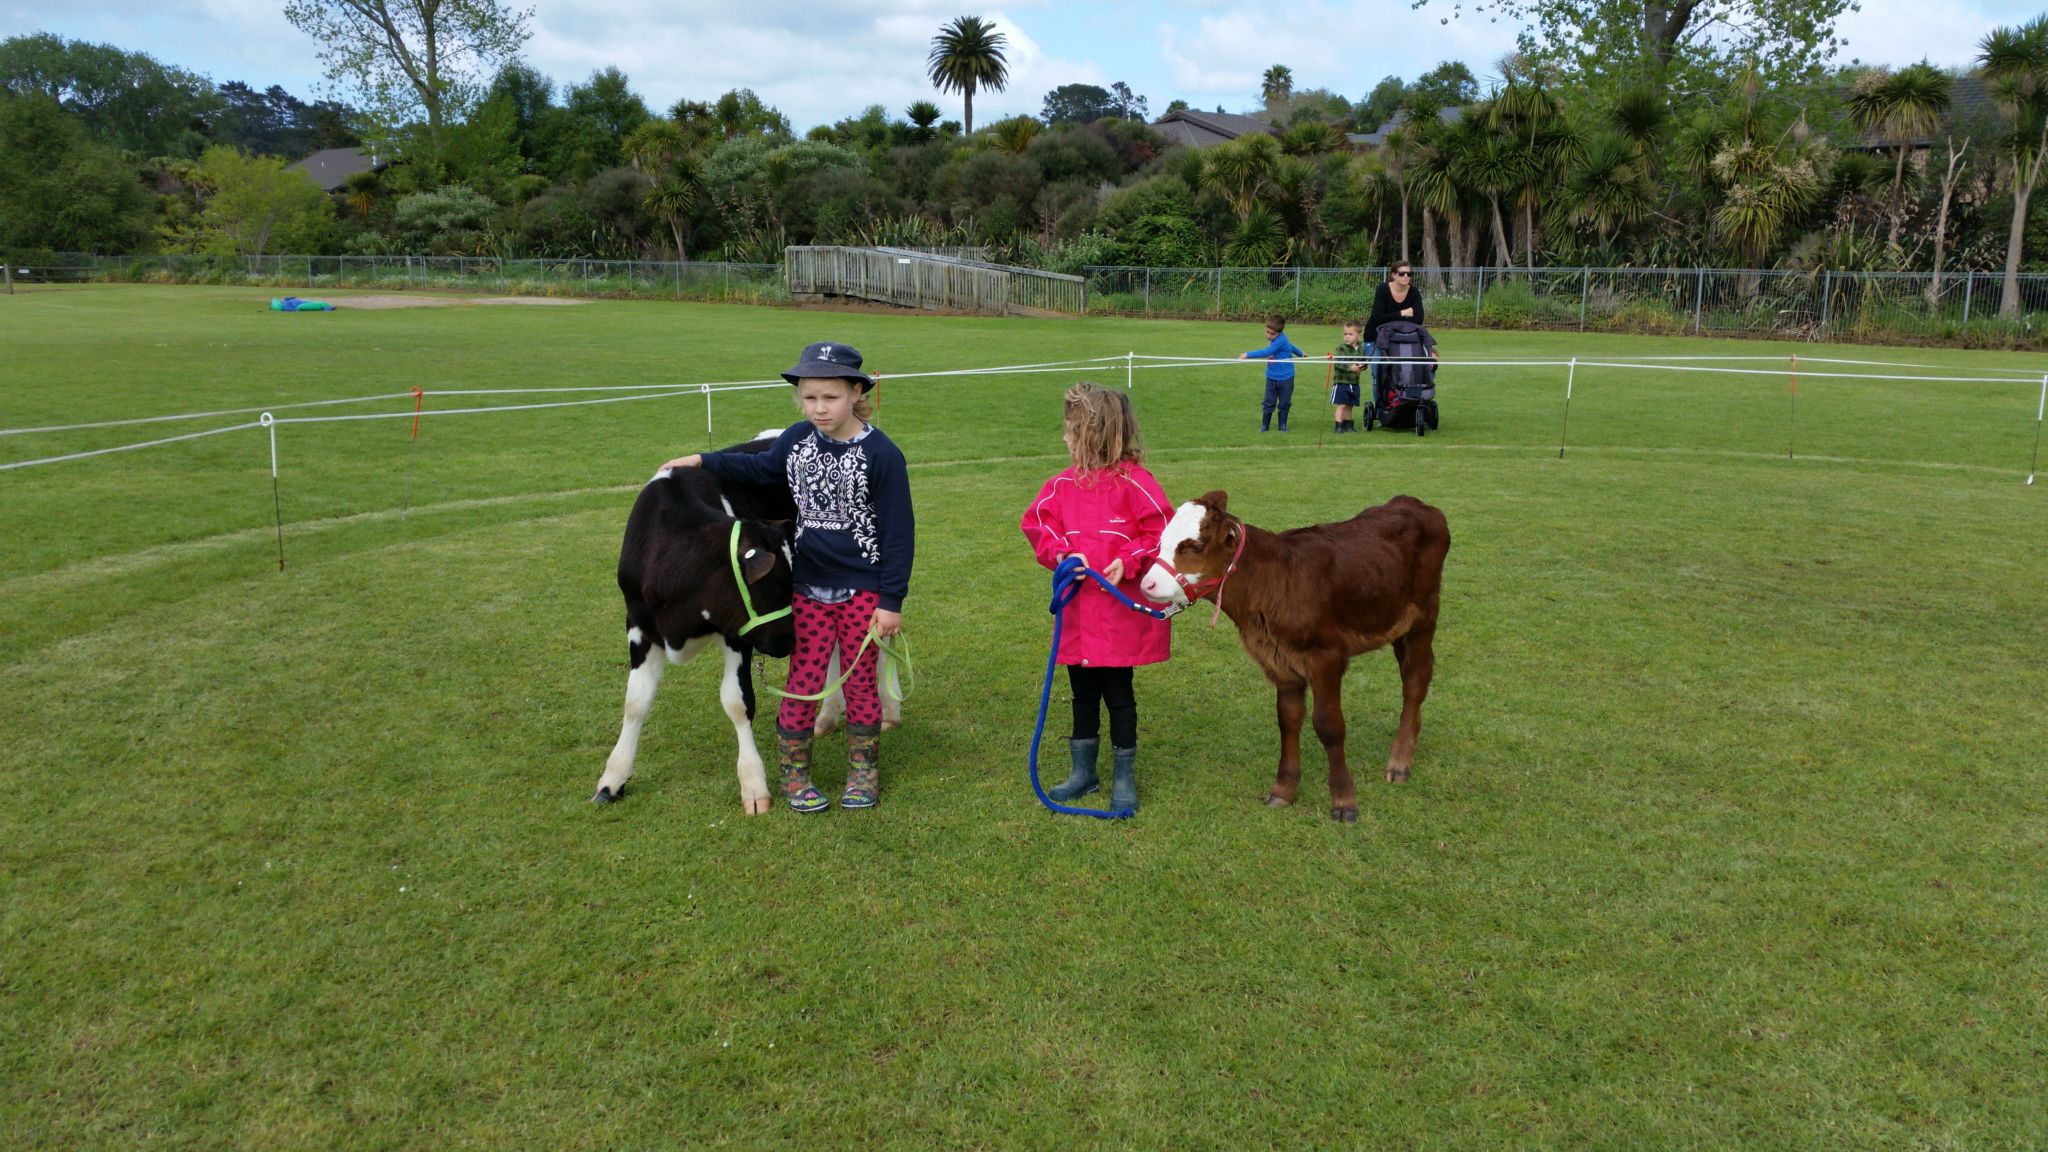 Both junior calf handlers on the day